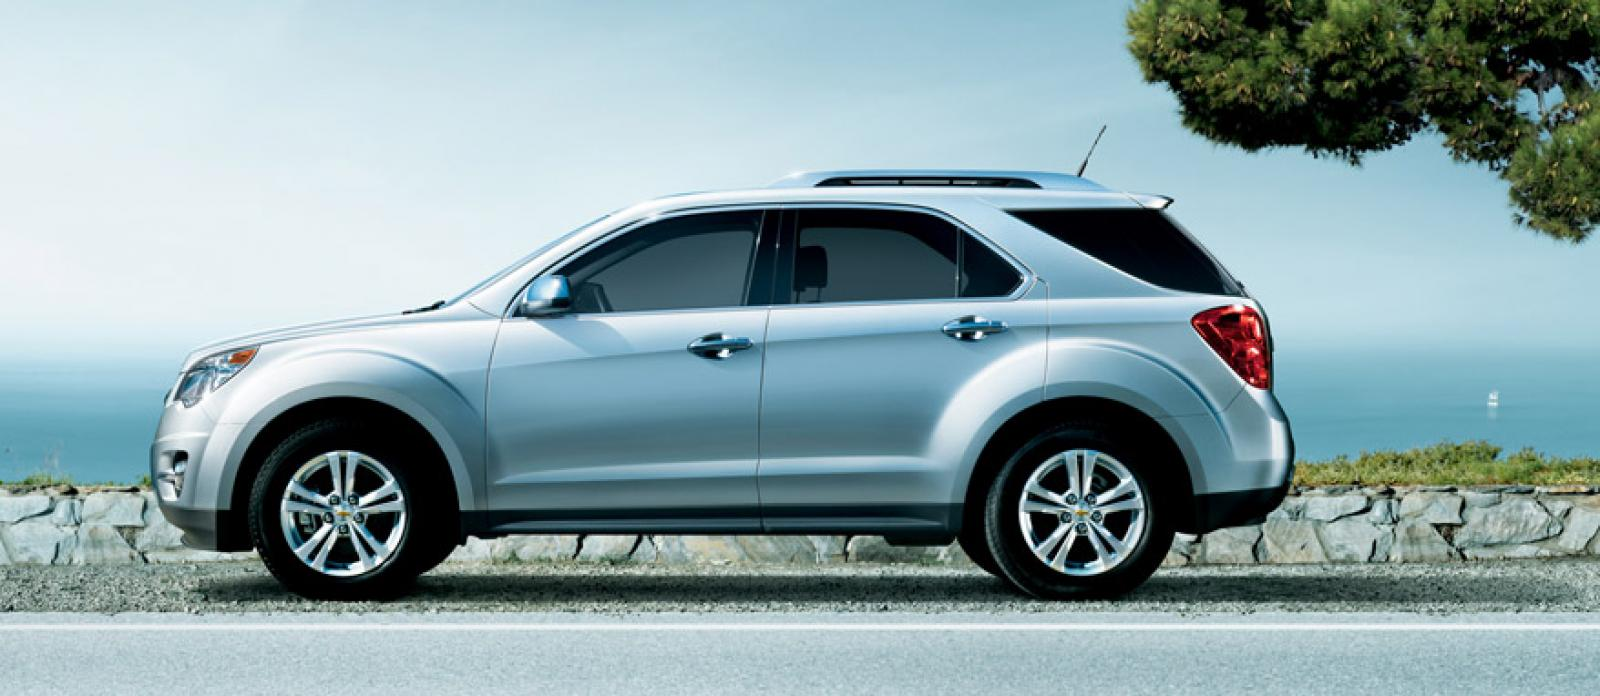 2012 chevrolet equinox information and photos zombiedrive. Black Bedroom Furniture Sets. Home Design Ideas